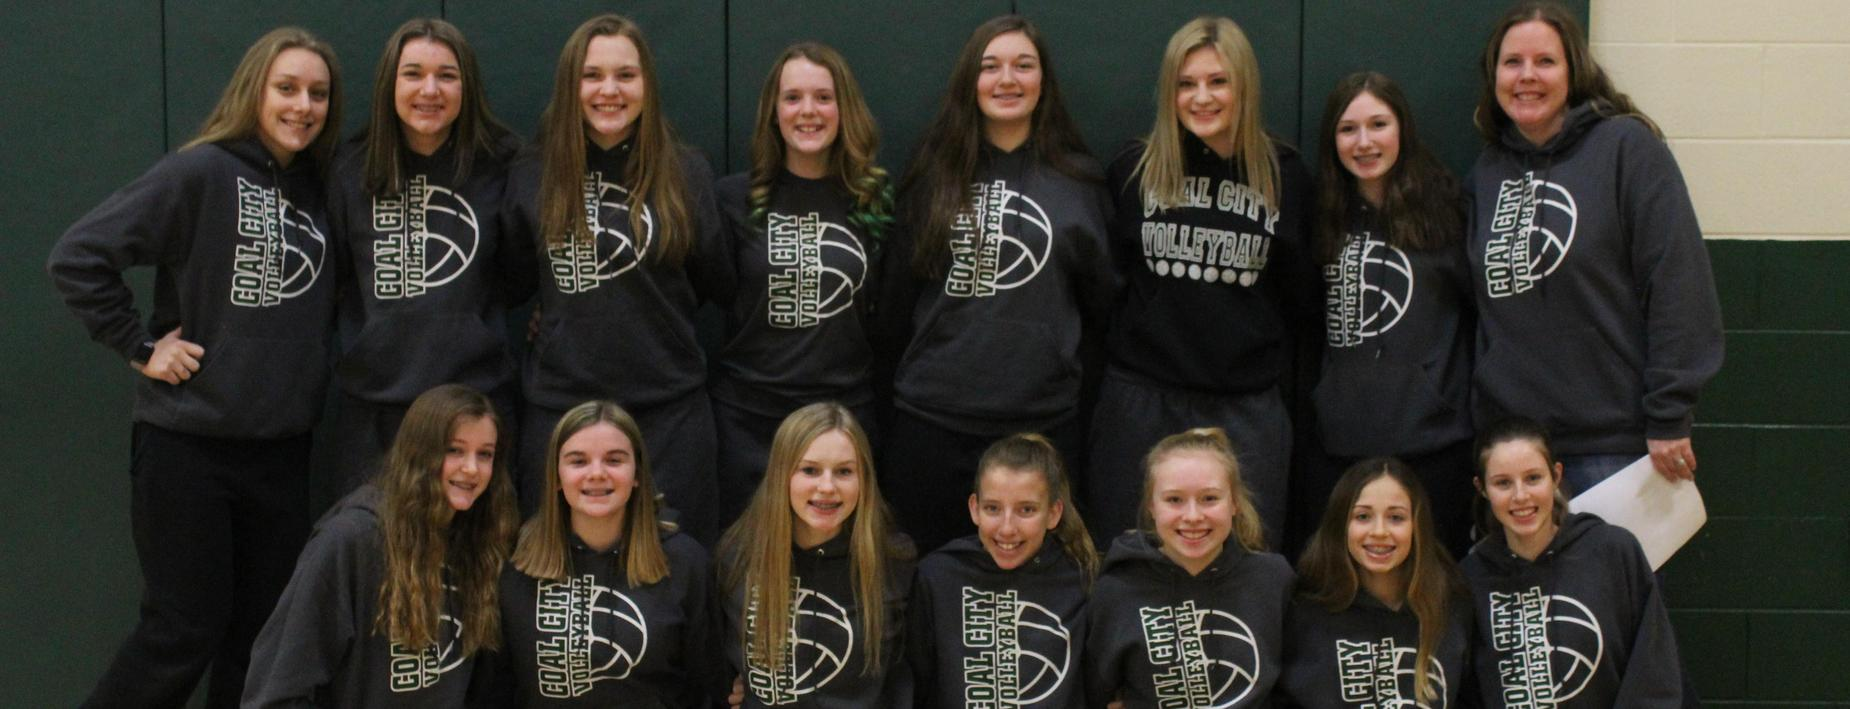 good luck at state CCMS 8th grade volleyball